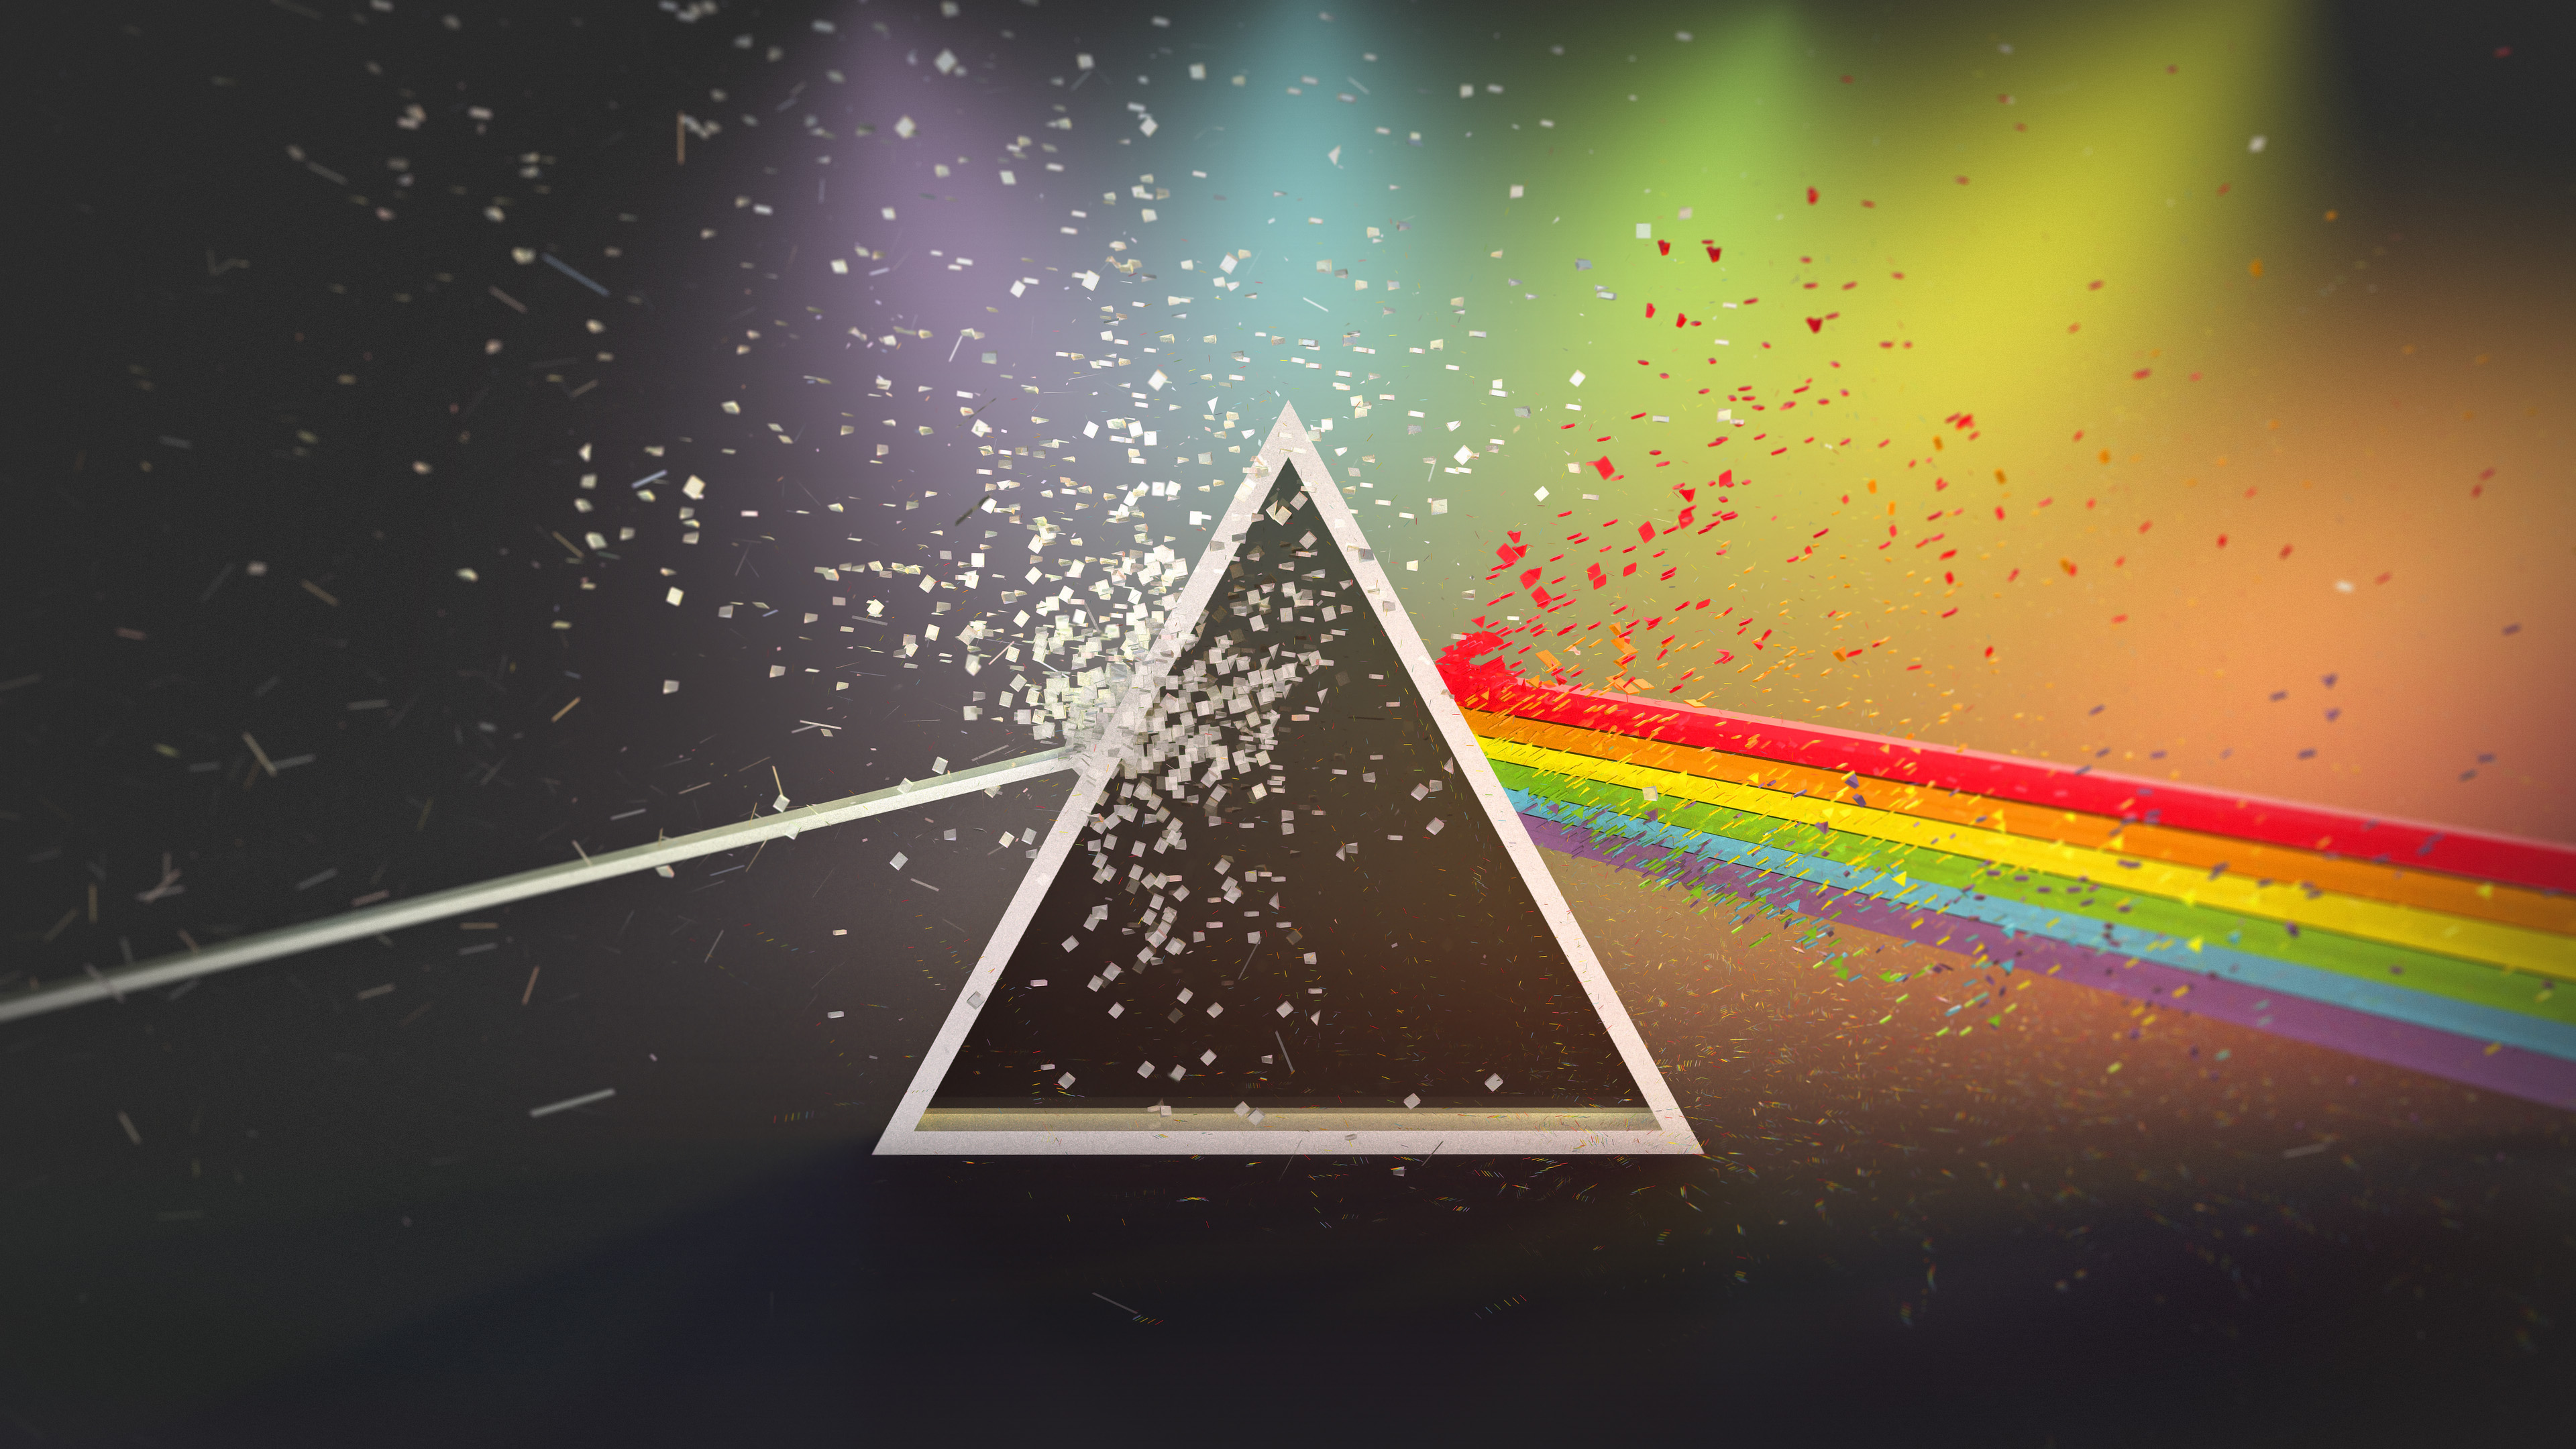 dark side of the moon fan wallpaper 4k 3840x2160 by l24d